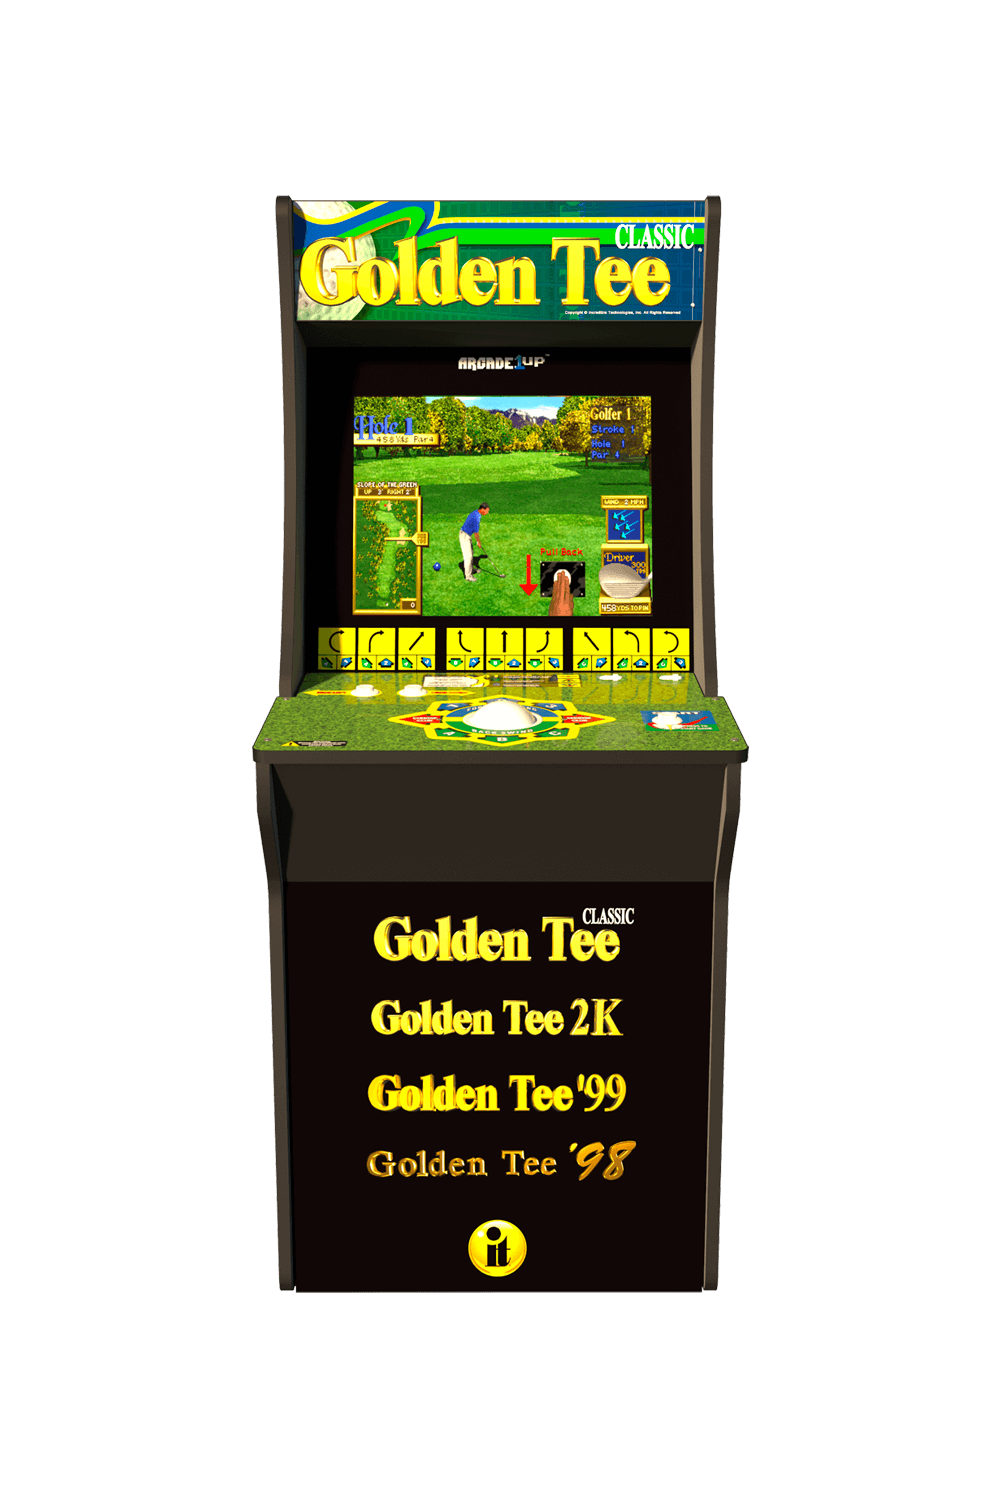 Golden Tee Arcade Cabinet - Arcade1Up